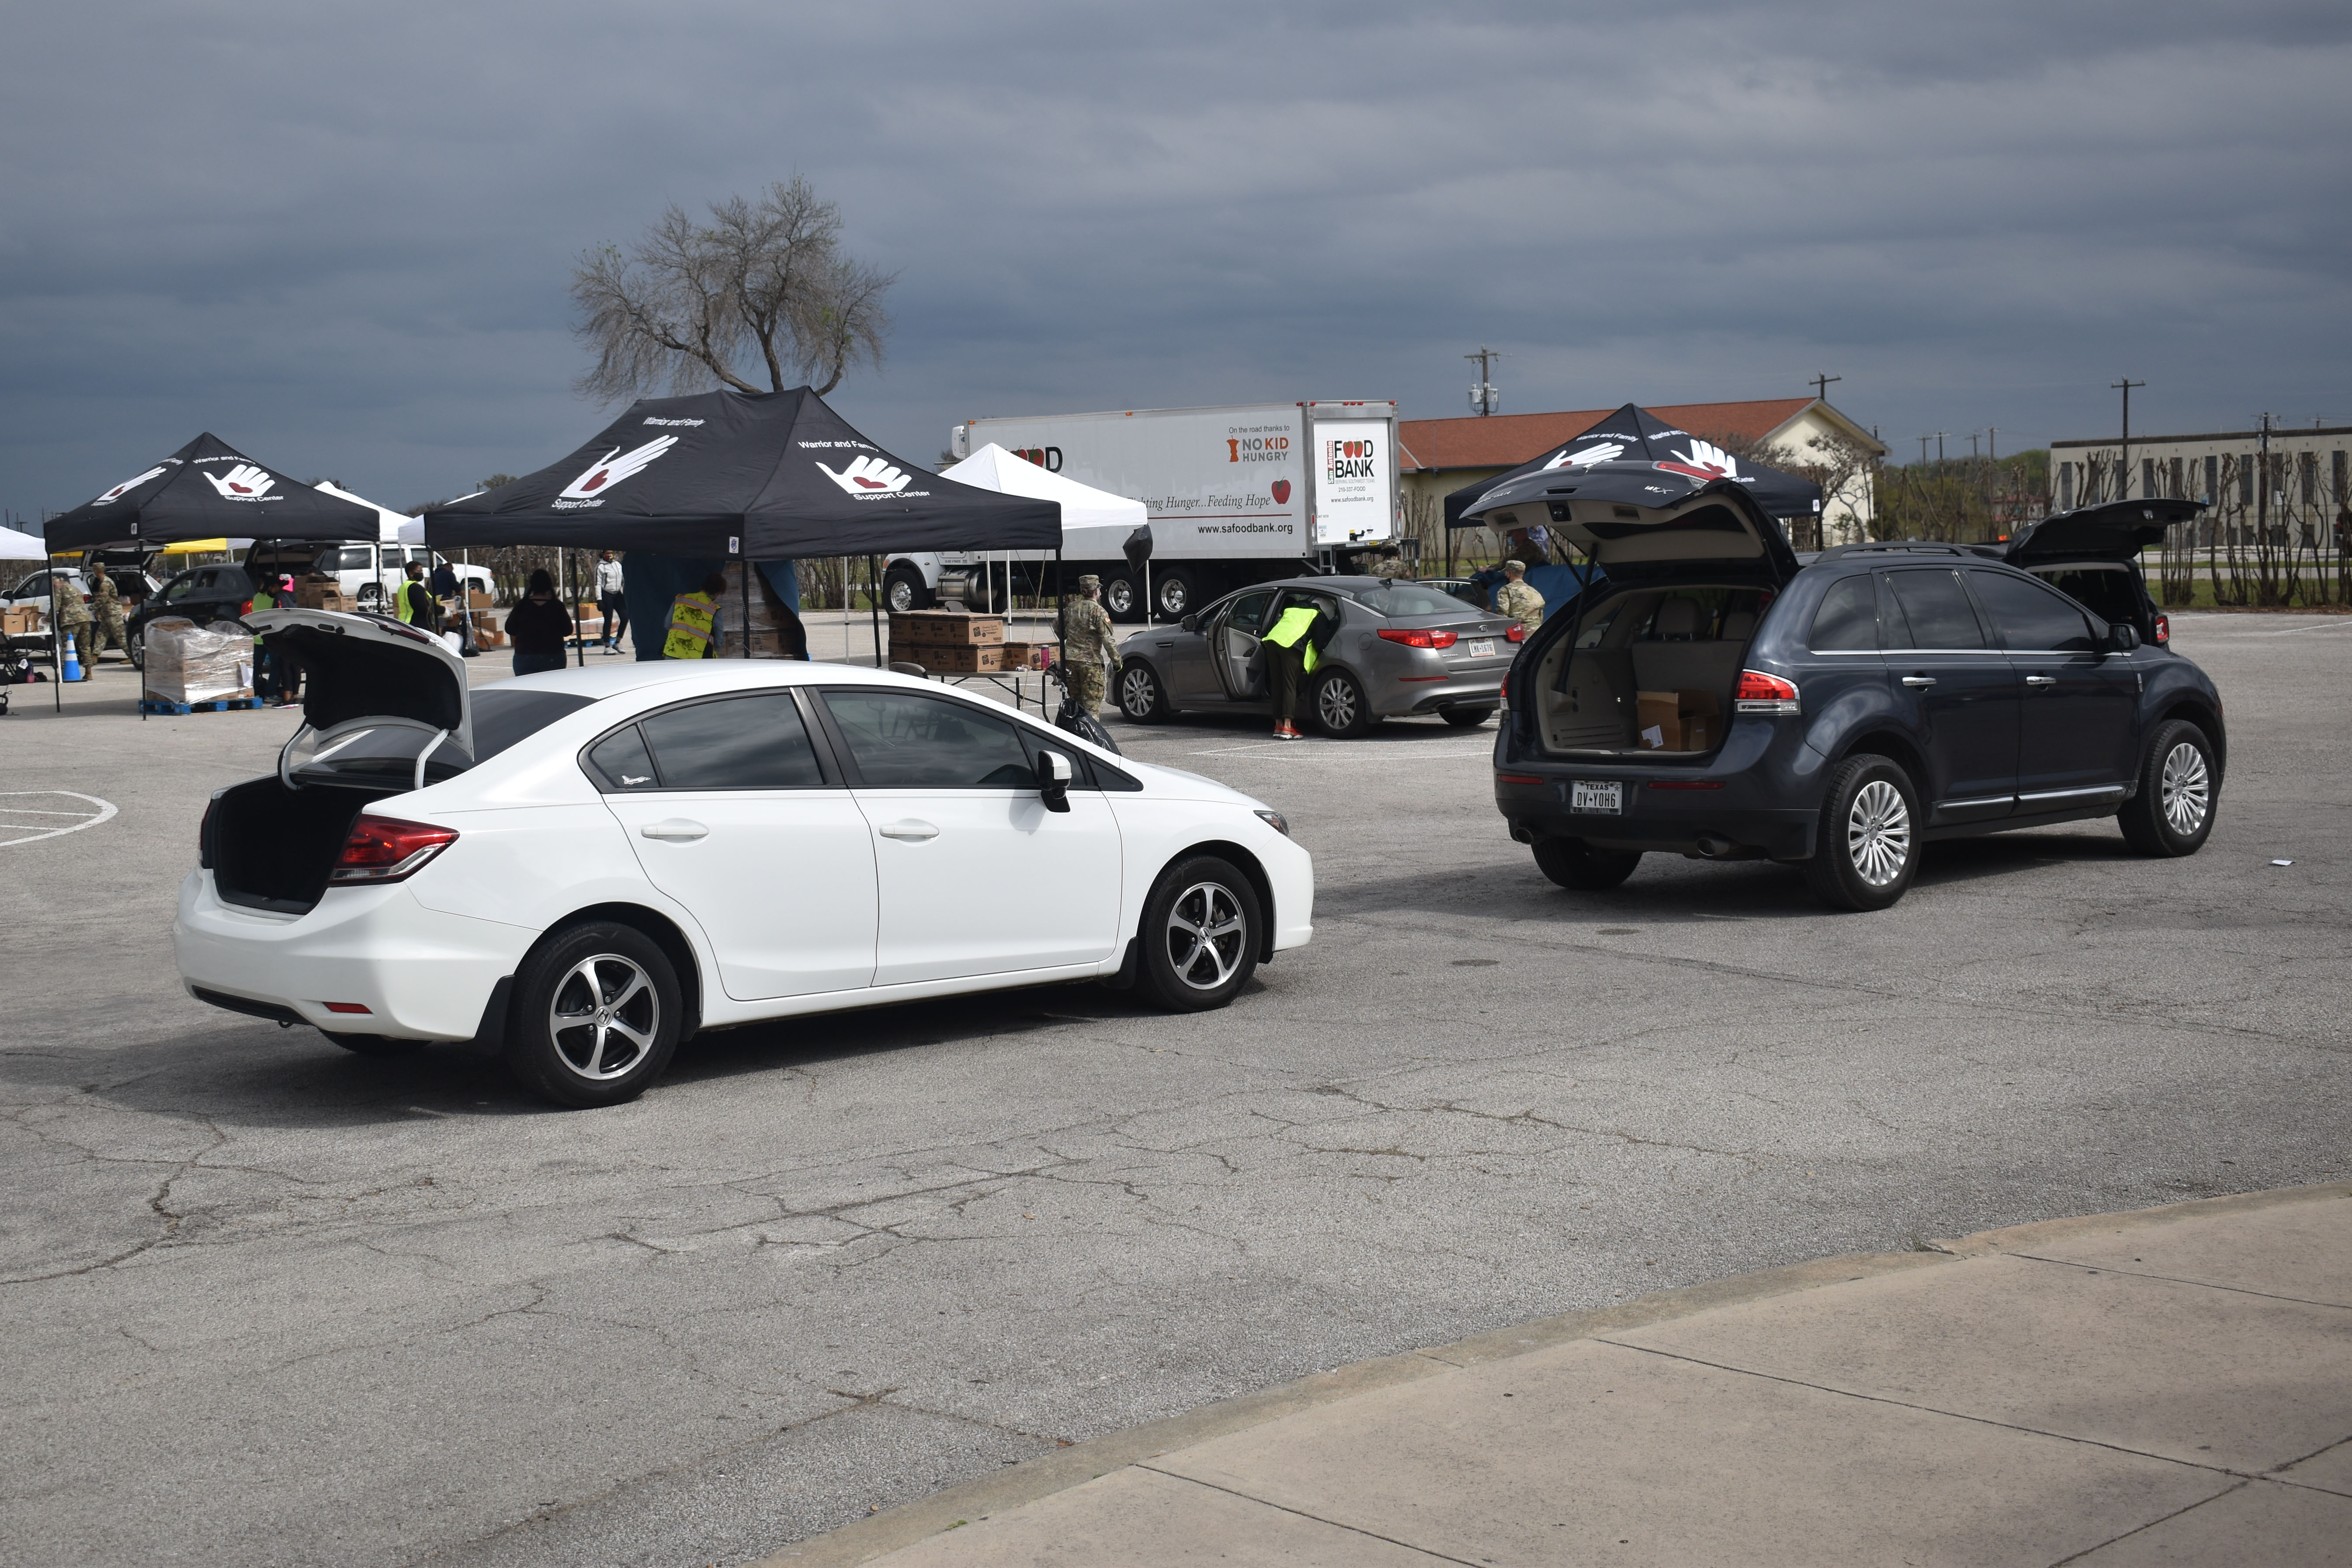 Caption: Cars line up at a March food distribution event at Fort Sam Houston in San Antonio., Credit: Carson Frame / American Homefront